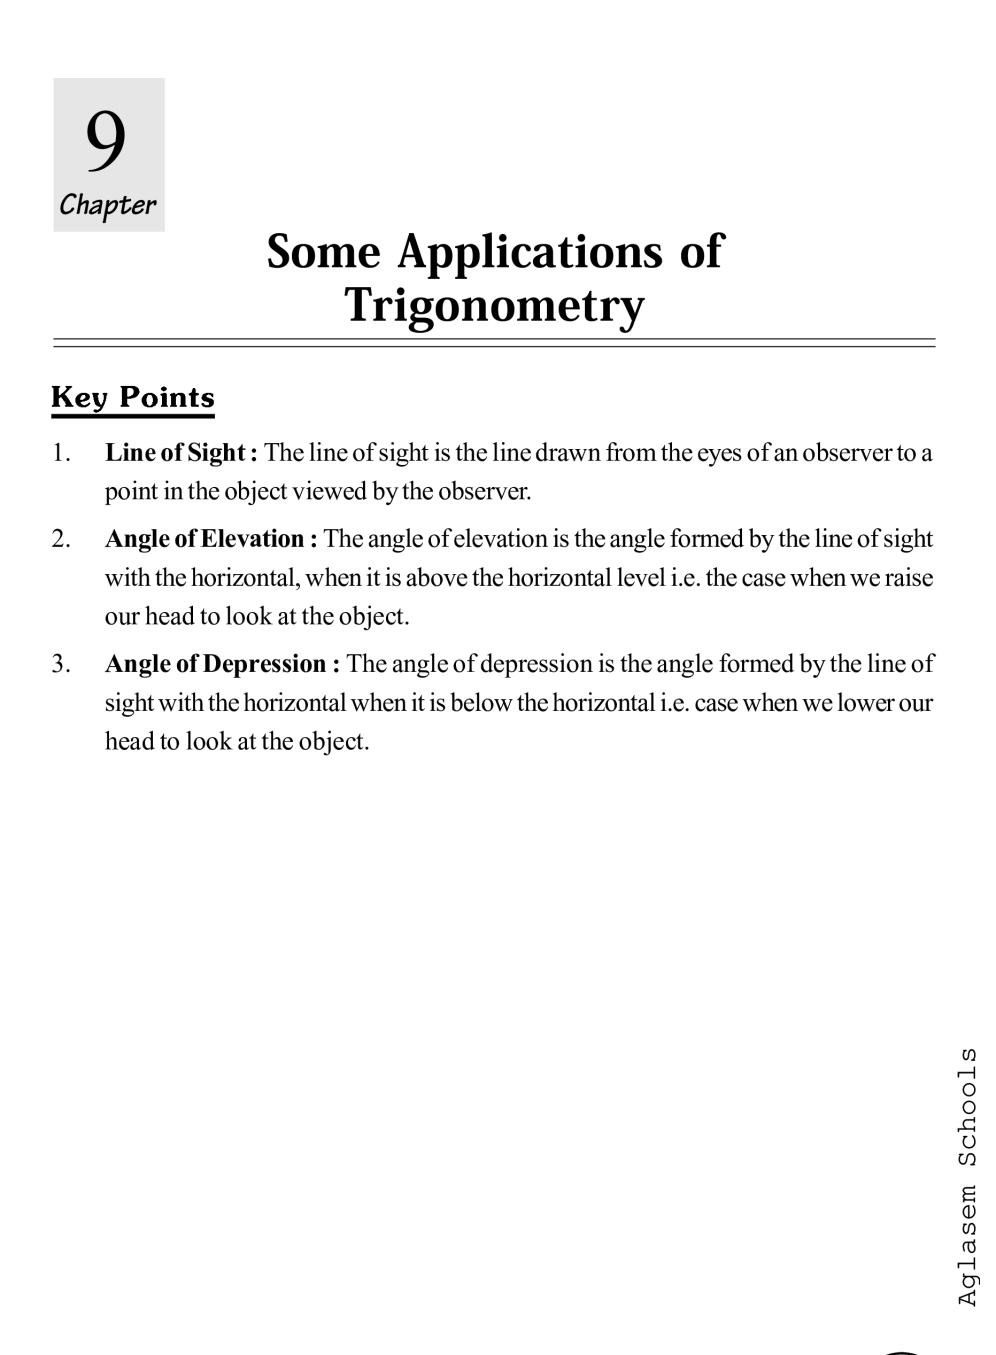 Class 10 Math Some Applications of Trigonometry Notes, Important